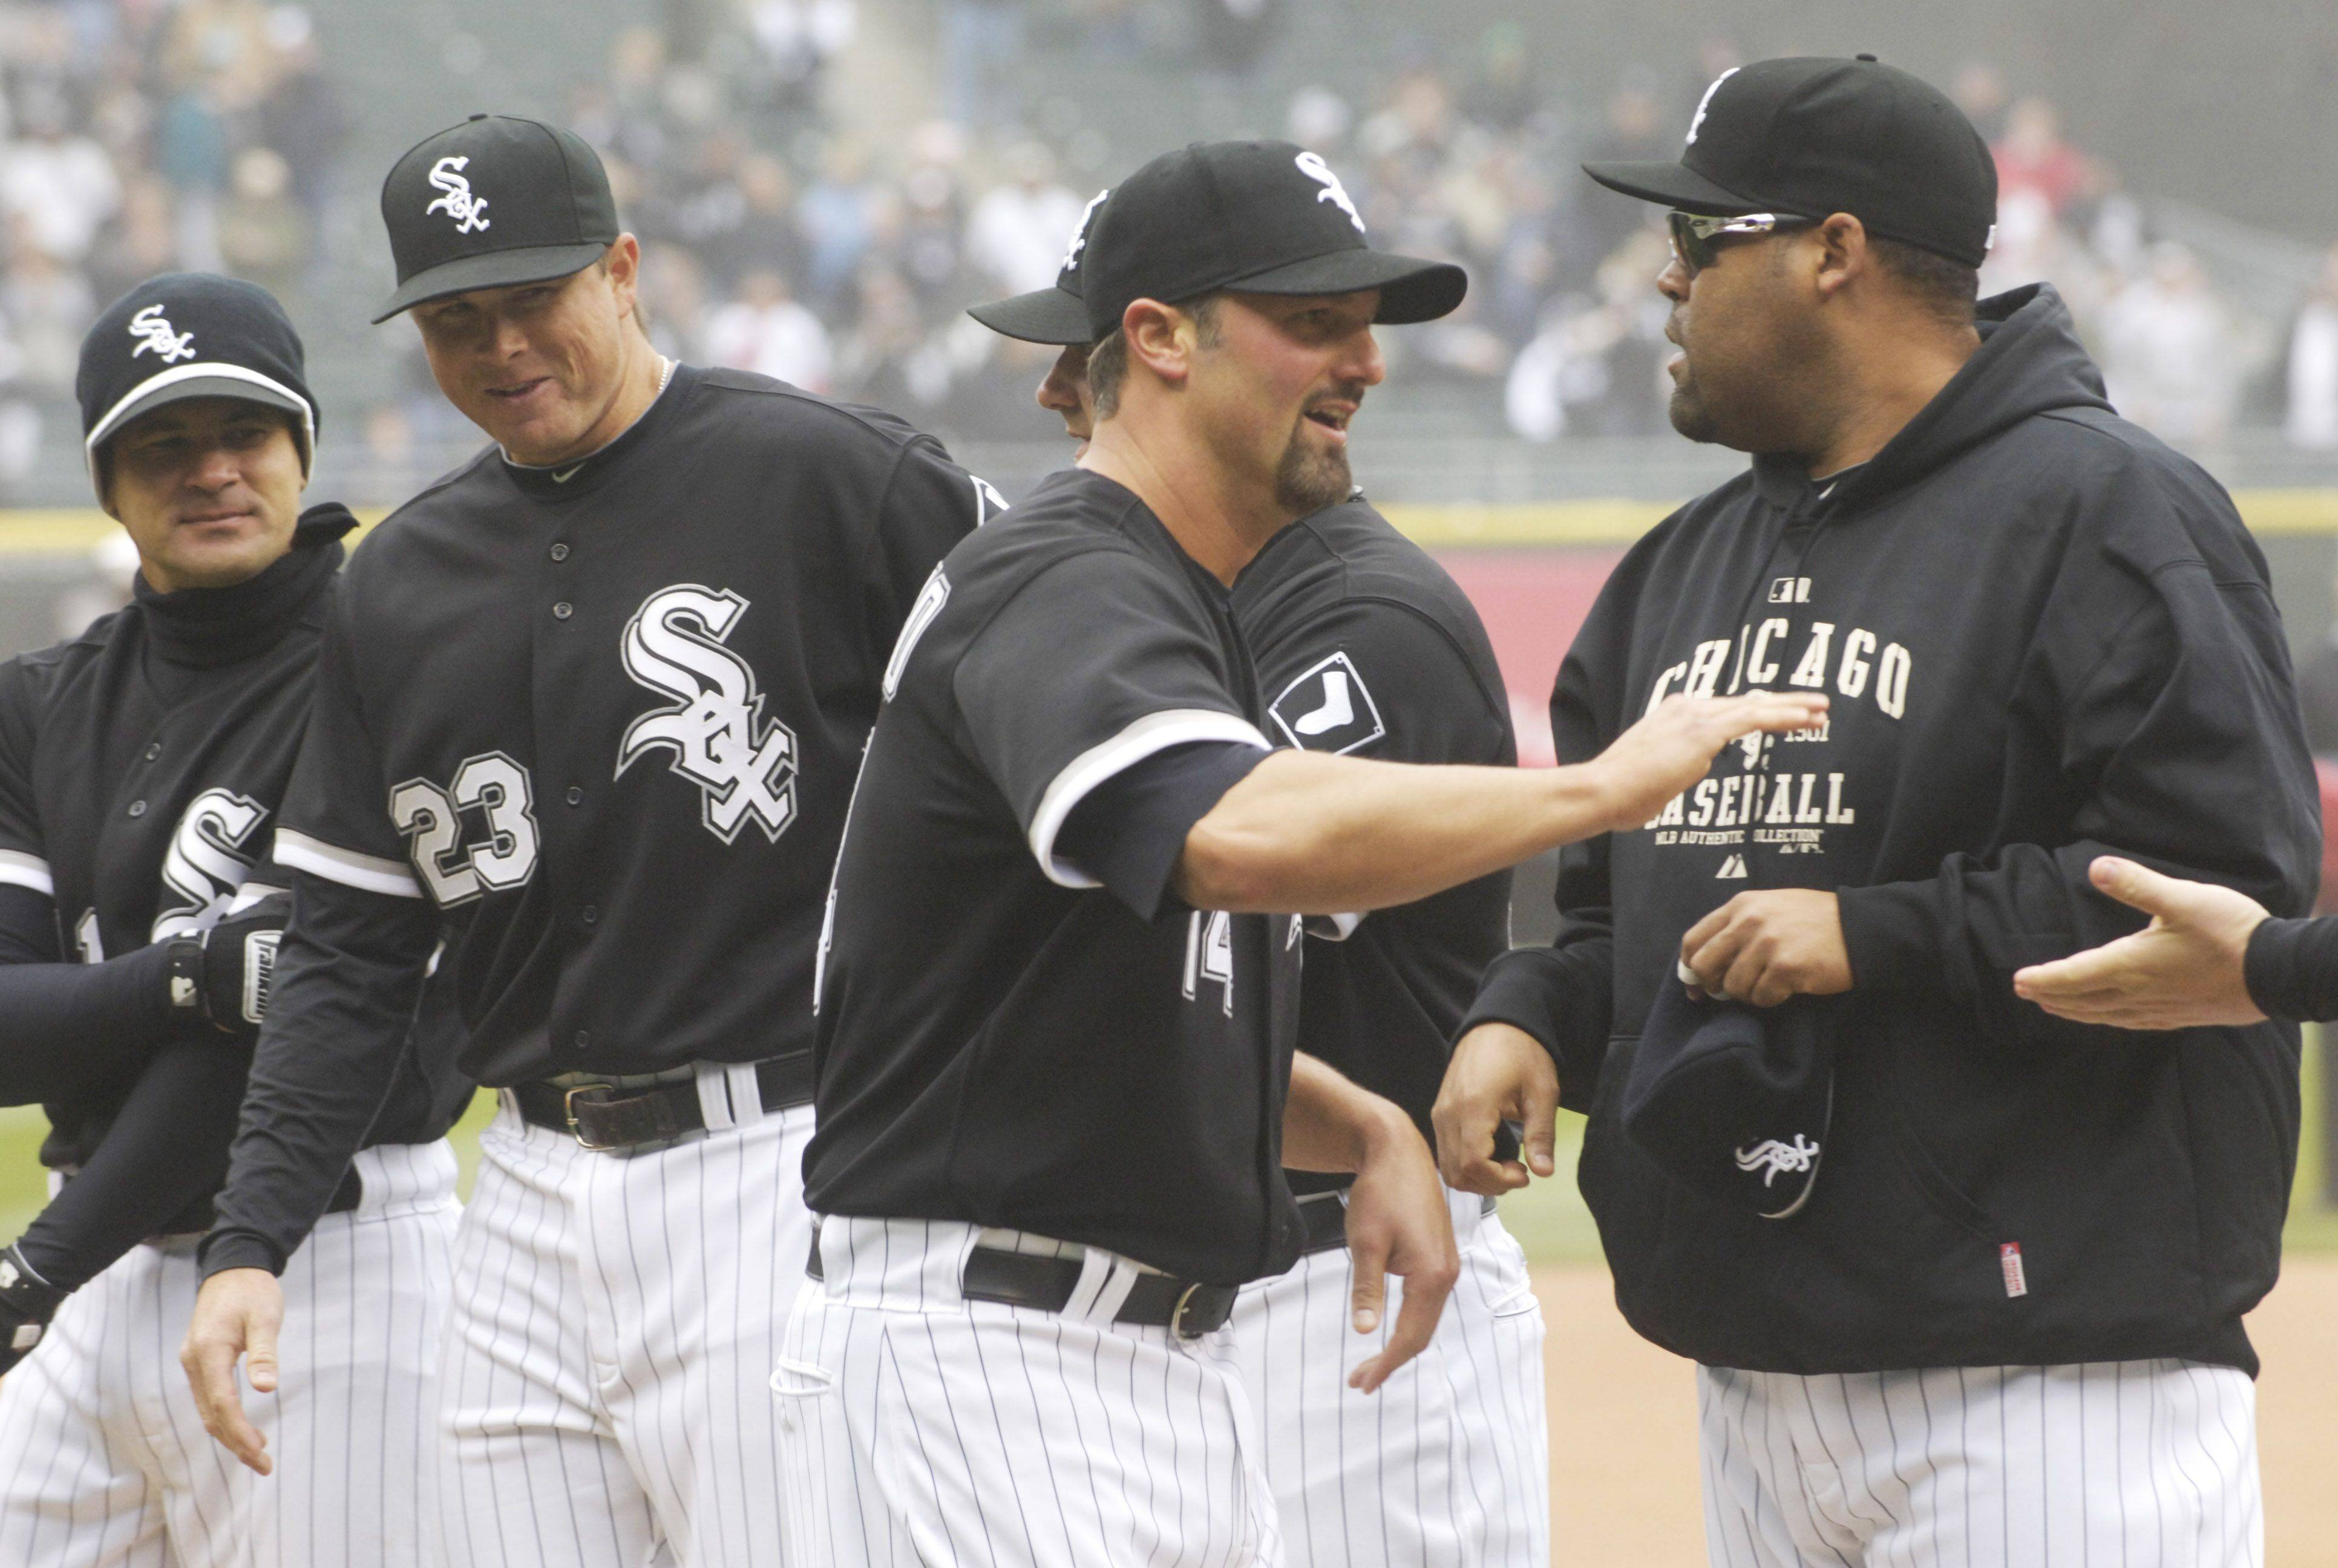 Paul Konerko is greeted on the field by teammates during player introductions at U.S. Cellular Field on Thursday.